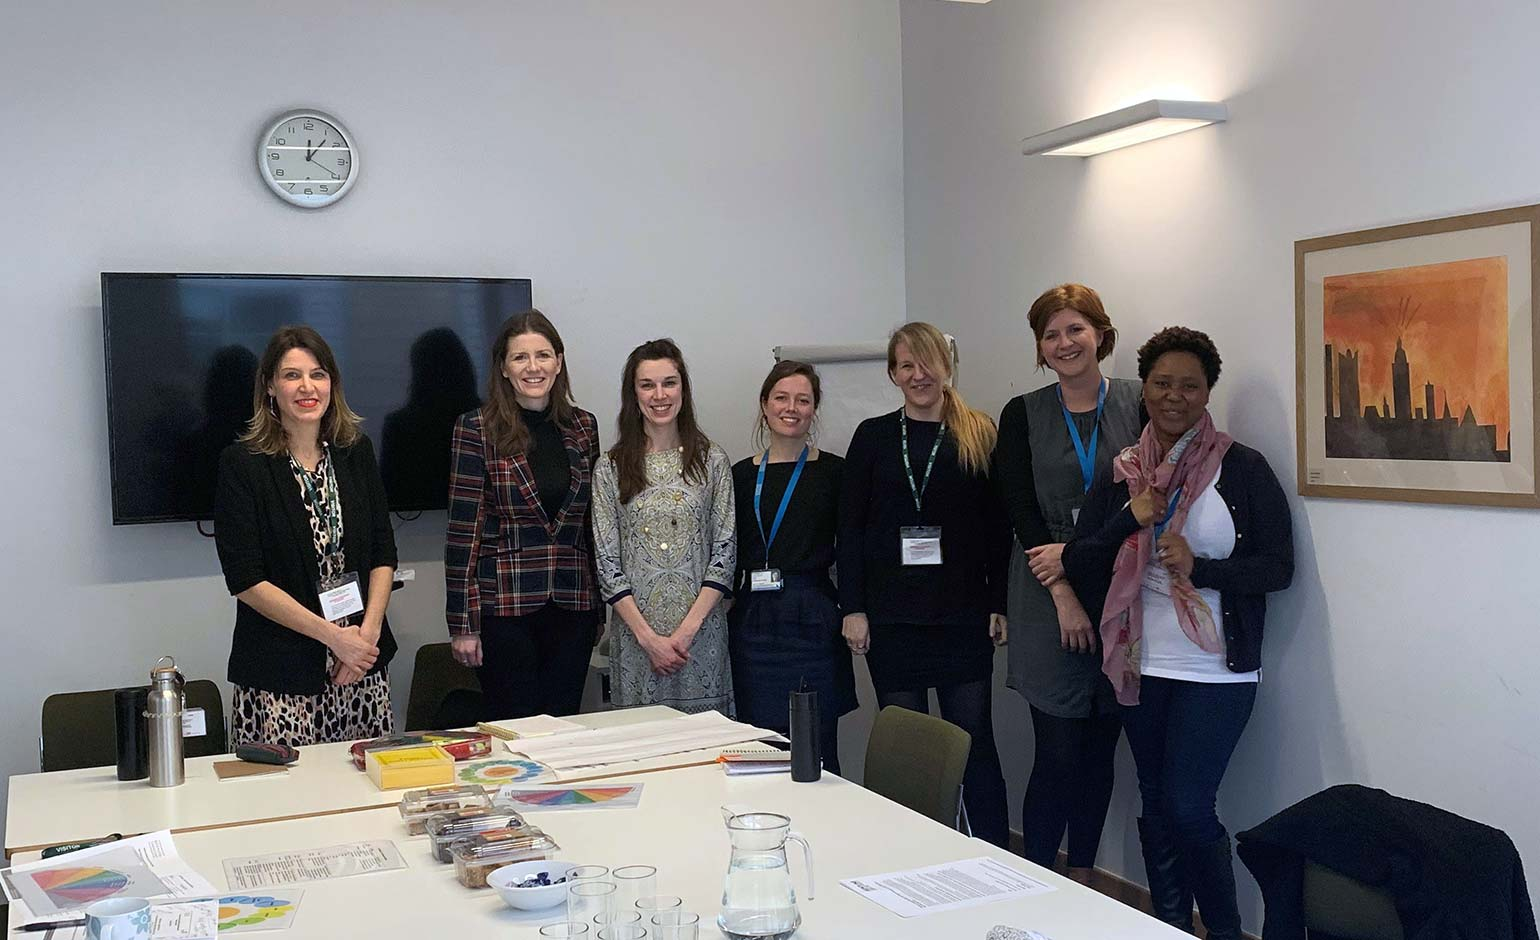 Children's minister meets social workers in Bath & North East Somerset